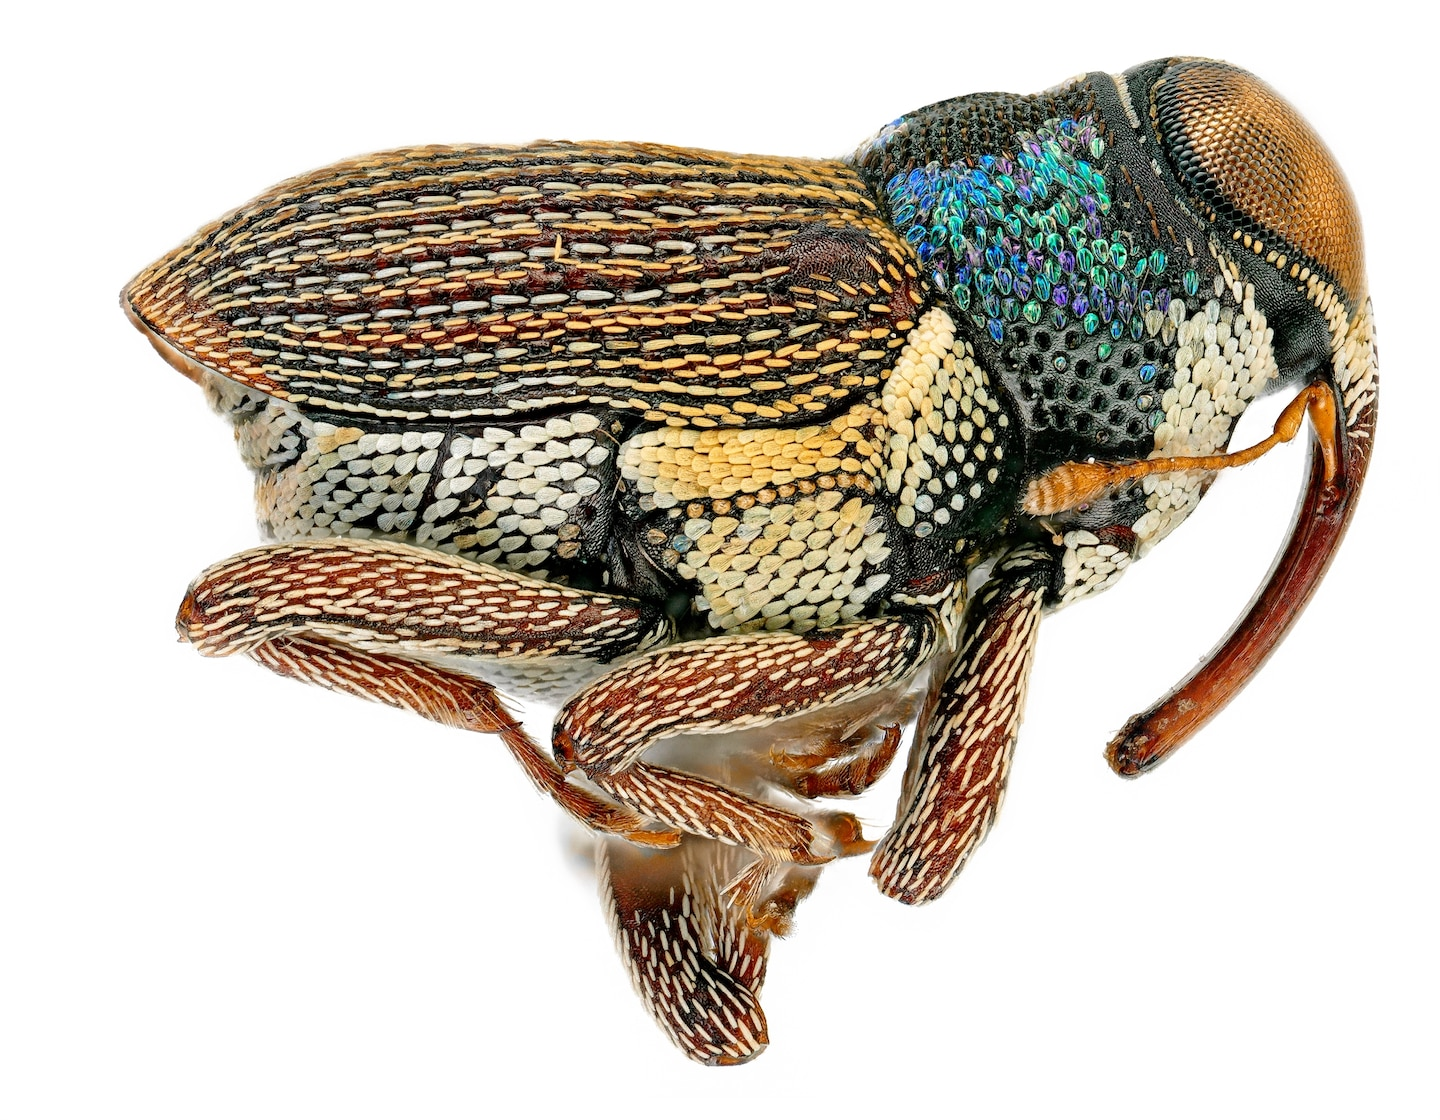 STOCK_MM9209_aaweevil2FINISHED.jpg?w=1440&h=1120